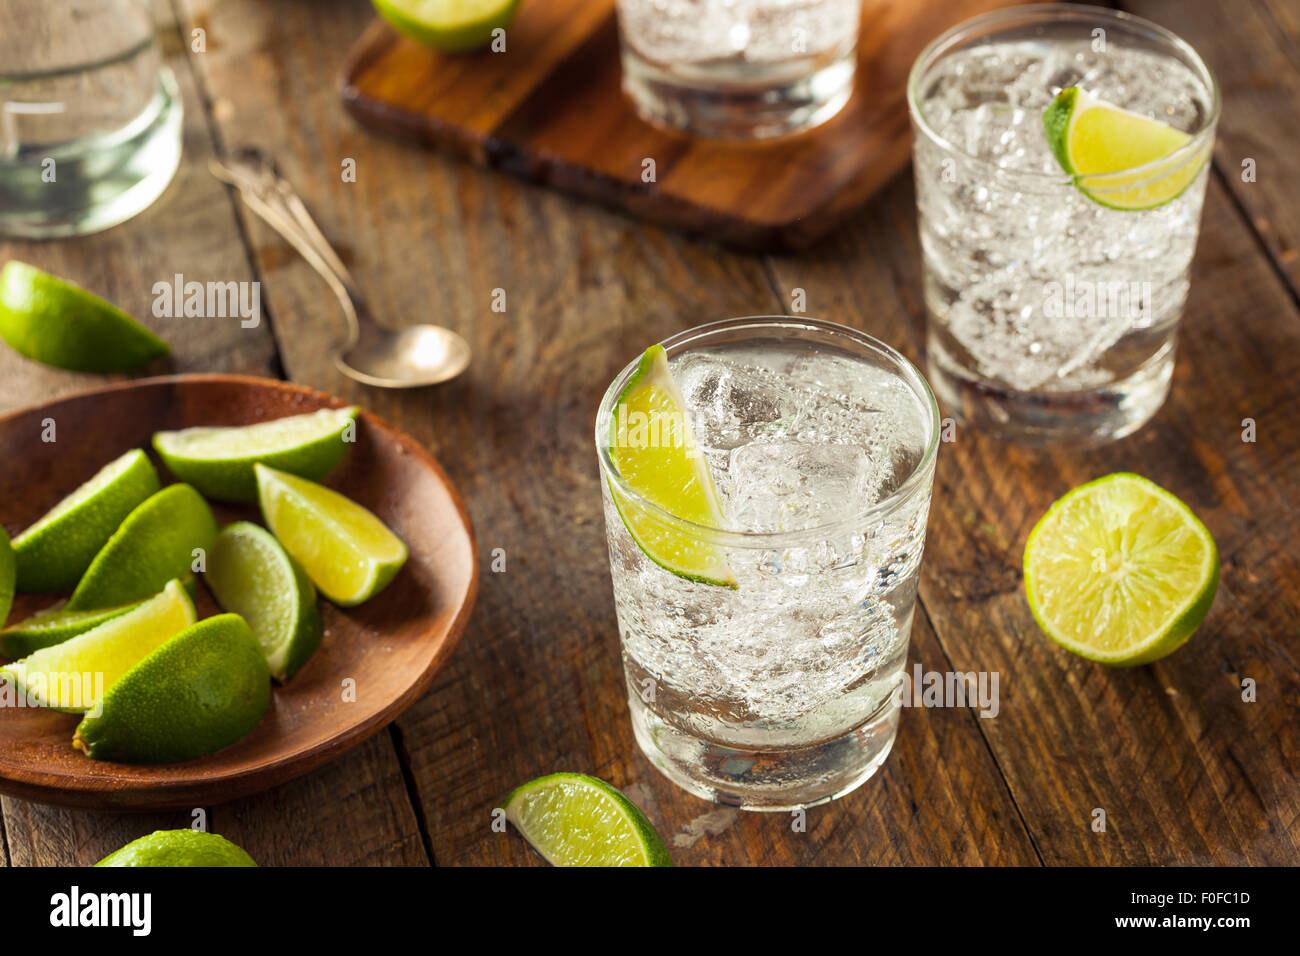 Alcoholic Gin and Tonic with a Lime Garnish - Stock Image